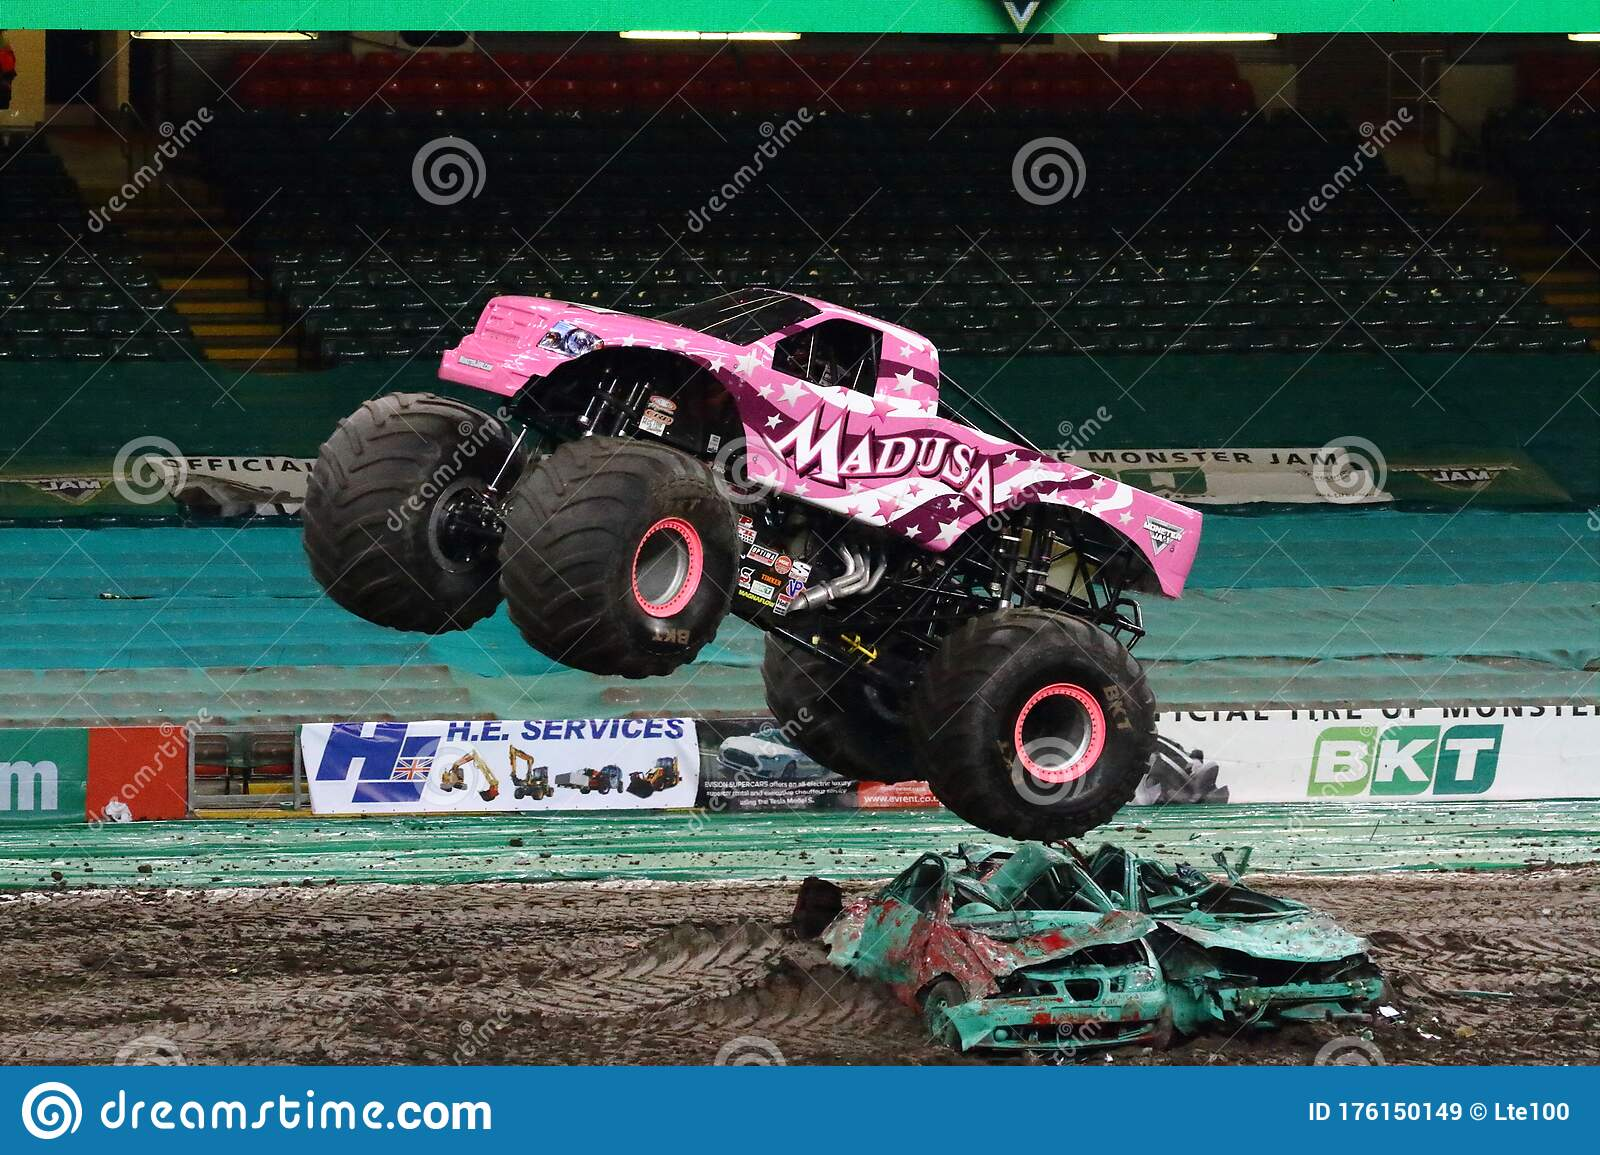 13 Pink Monster Truck Photos Free Royalty Free Stock Photos From Dreamstime